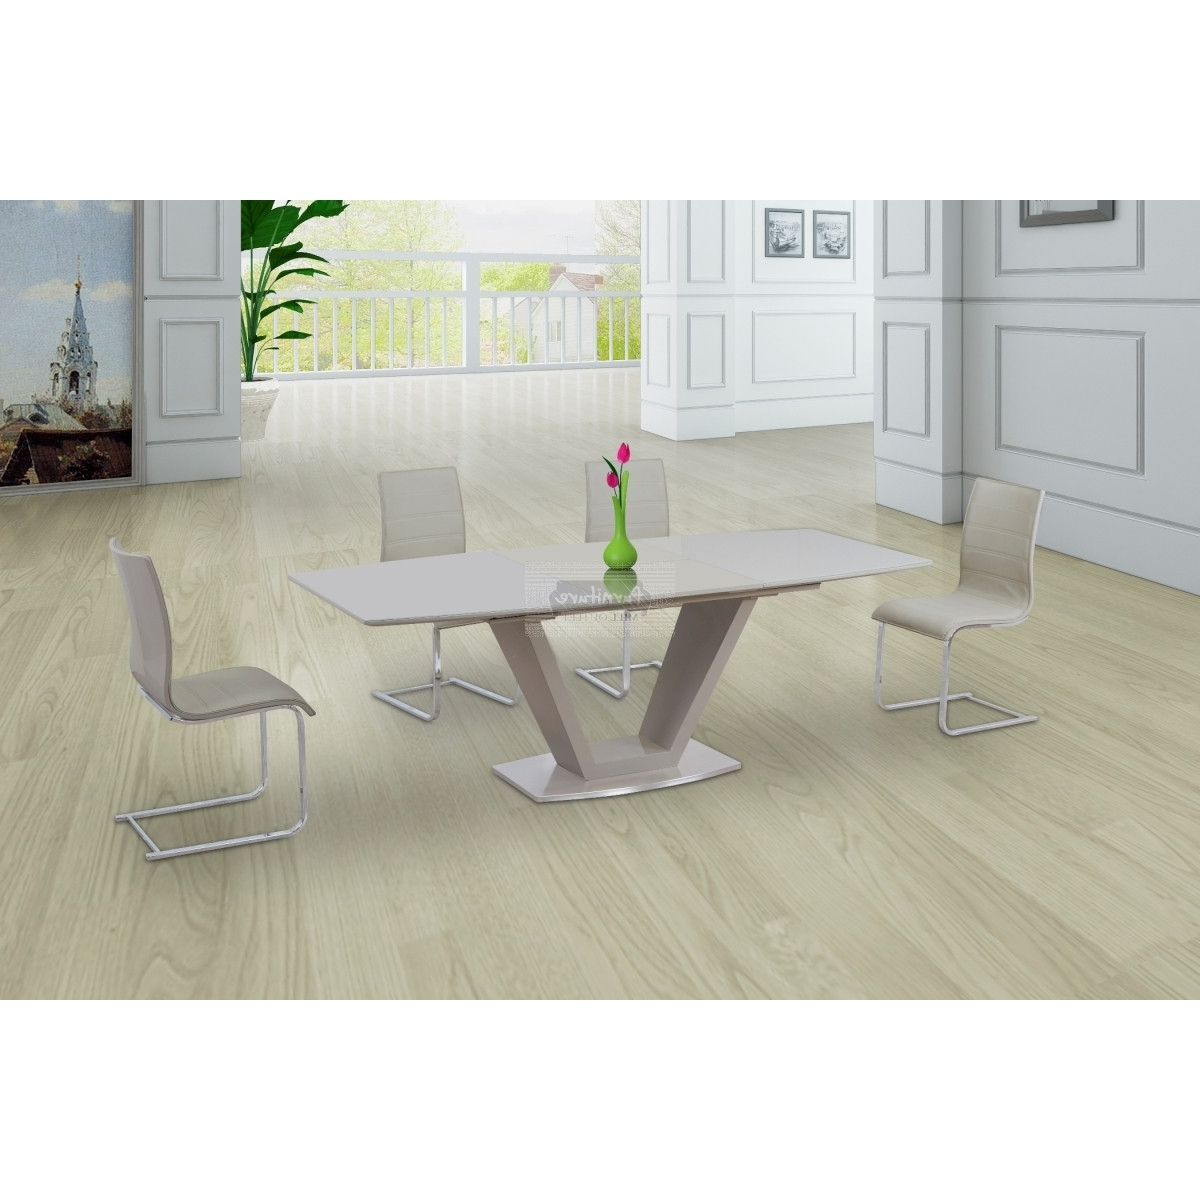 Fashionable Cream Gloss Dining Tables And Chairs Throughout Lorgato Gelato Cream High Gloss Extending Dining Table – 160Cm To (View 17 of 25)